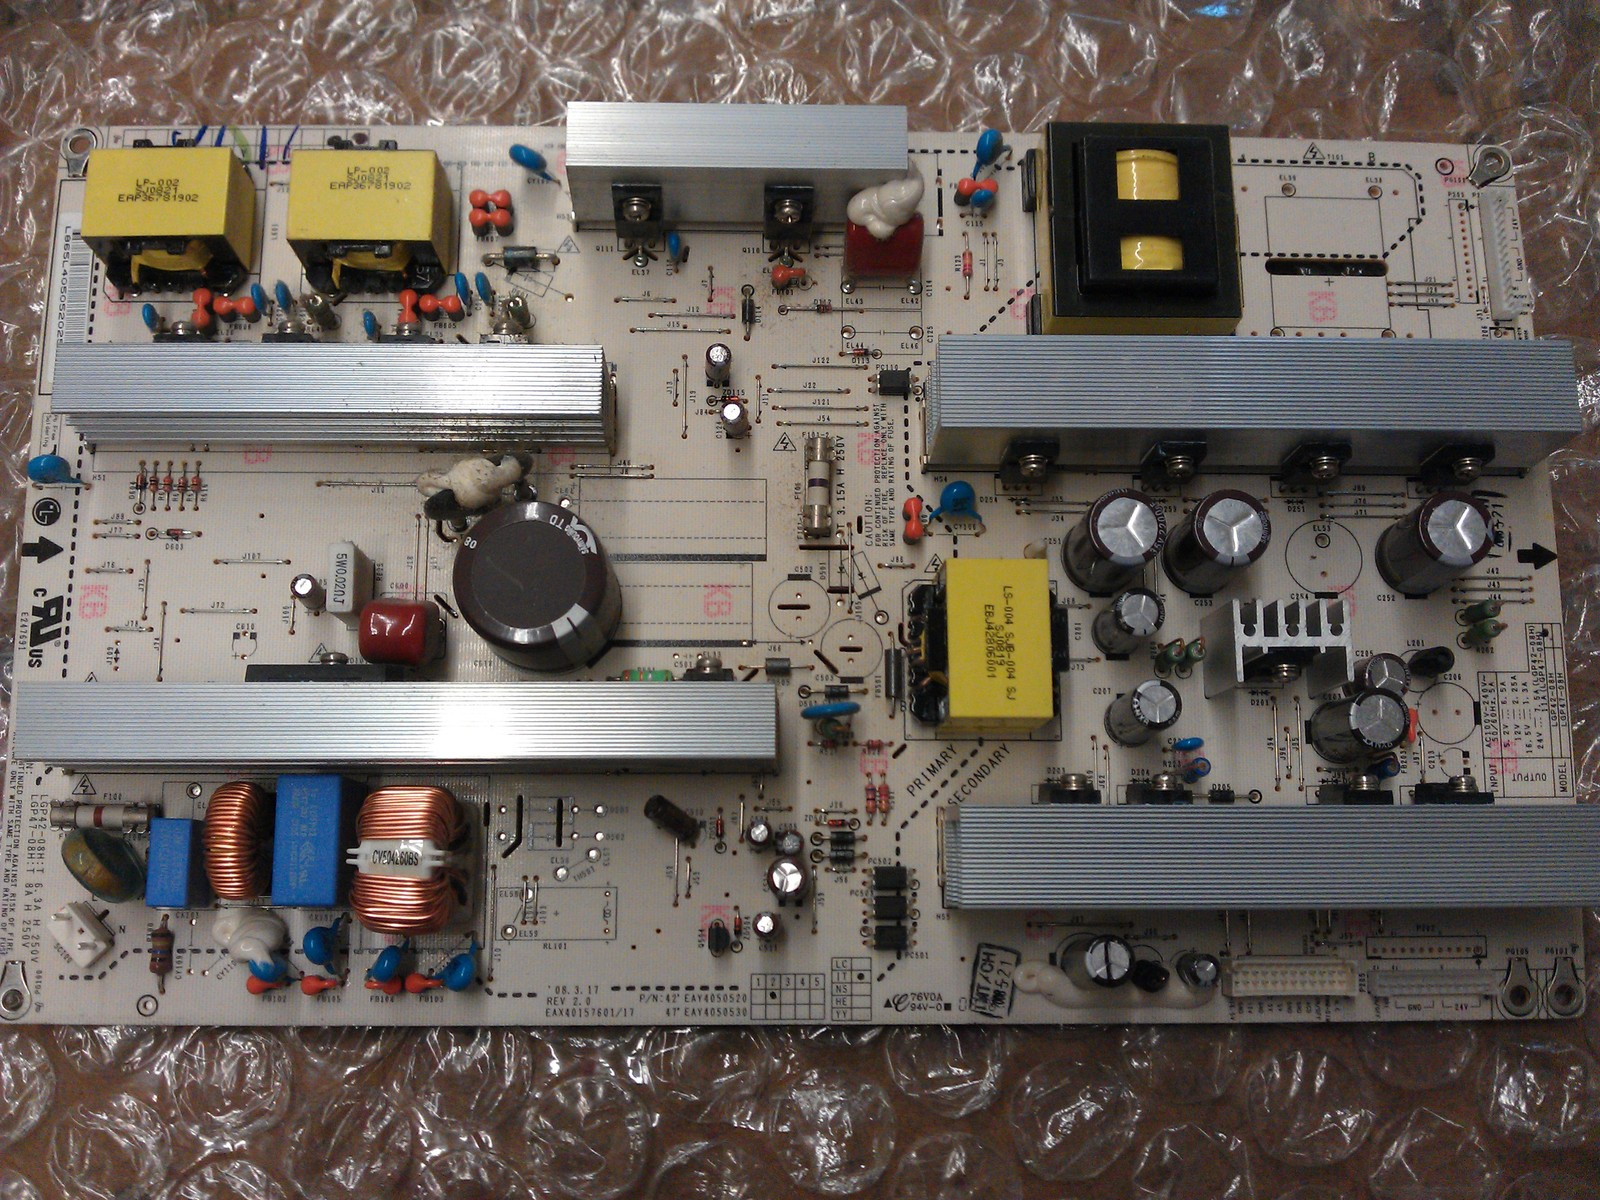 EAY4050520 Power Supply Board From LG 42LG70-UA AUSQLJR LCD TV